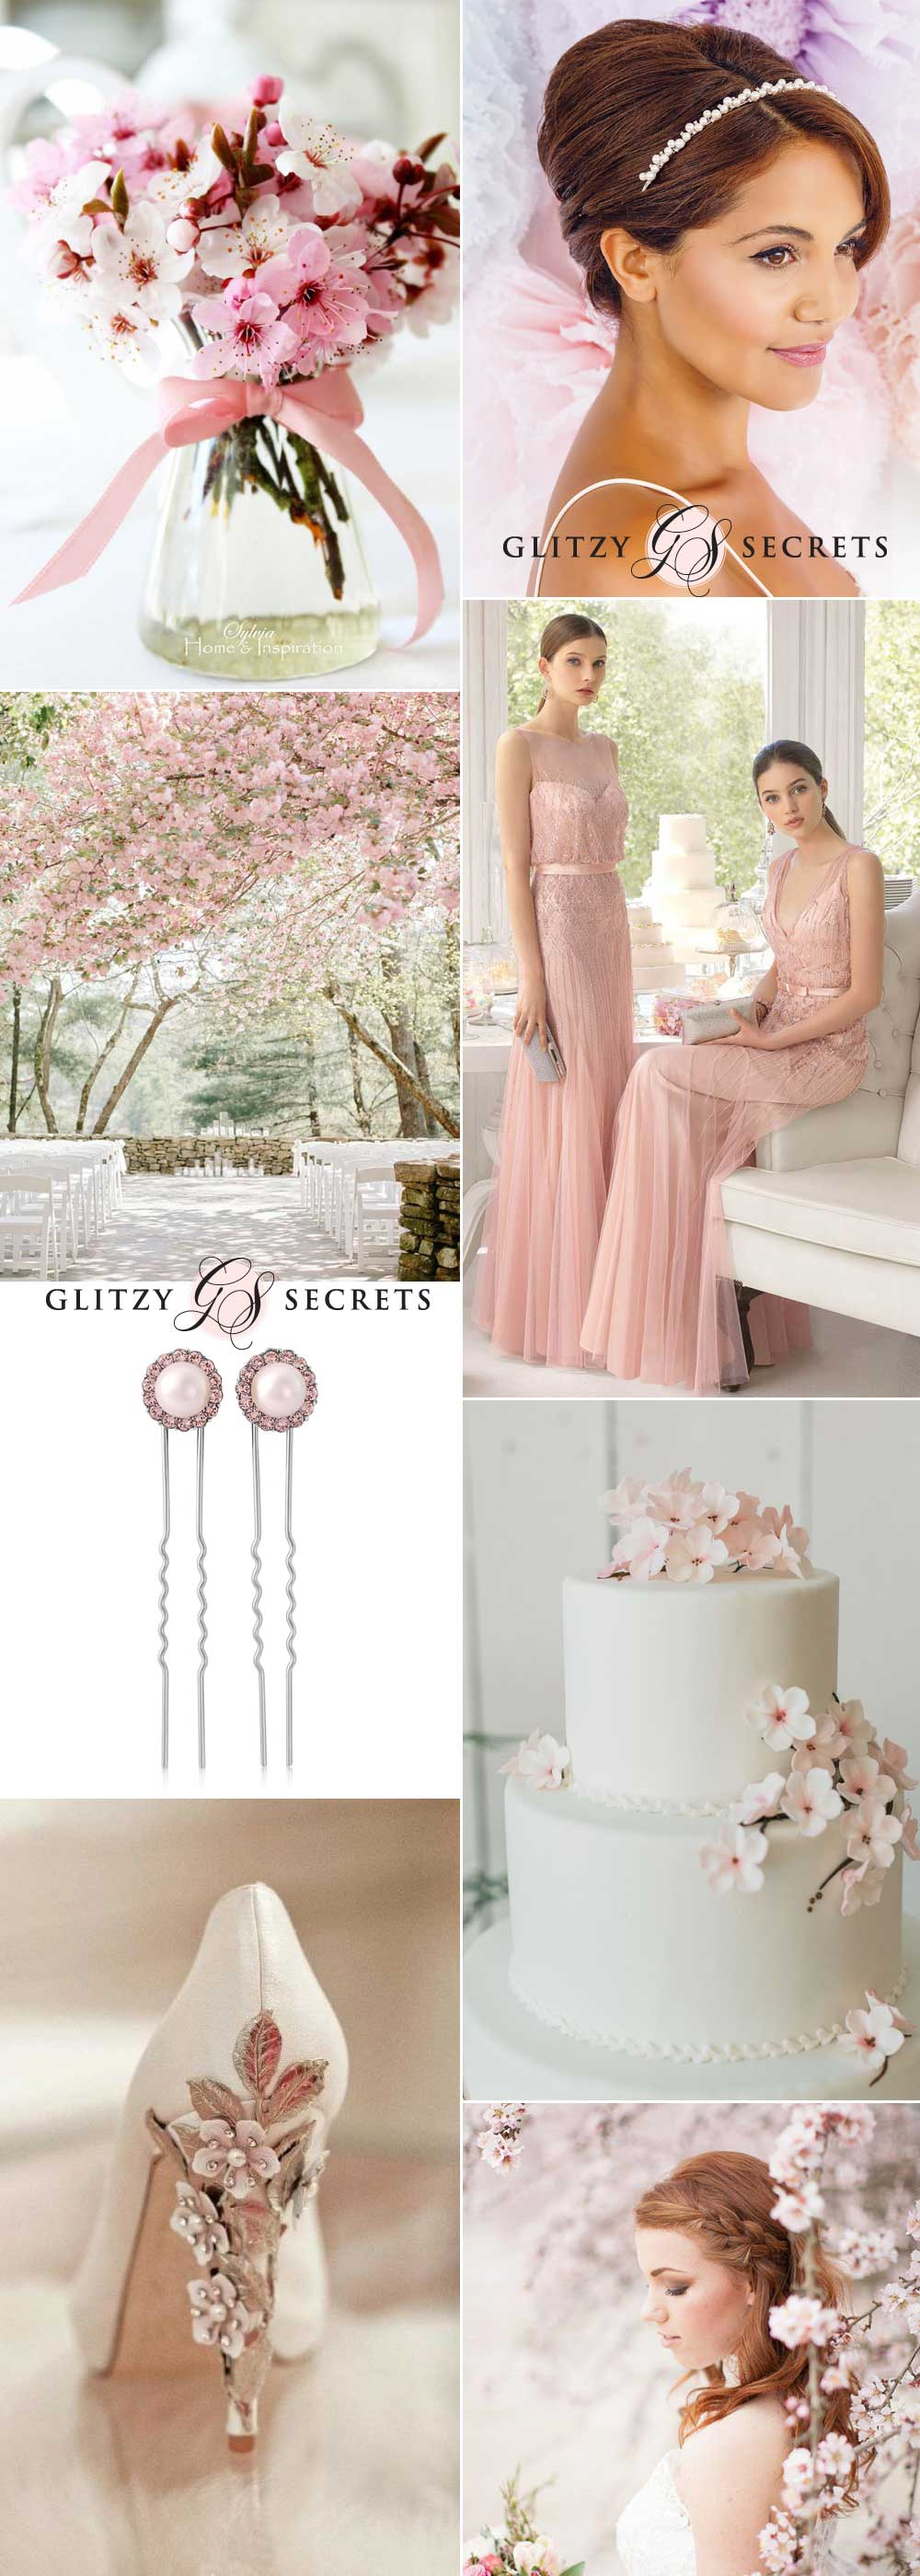 cherry blossom - a pretty spring wedding theme